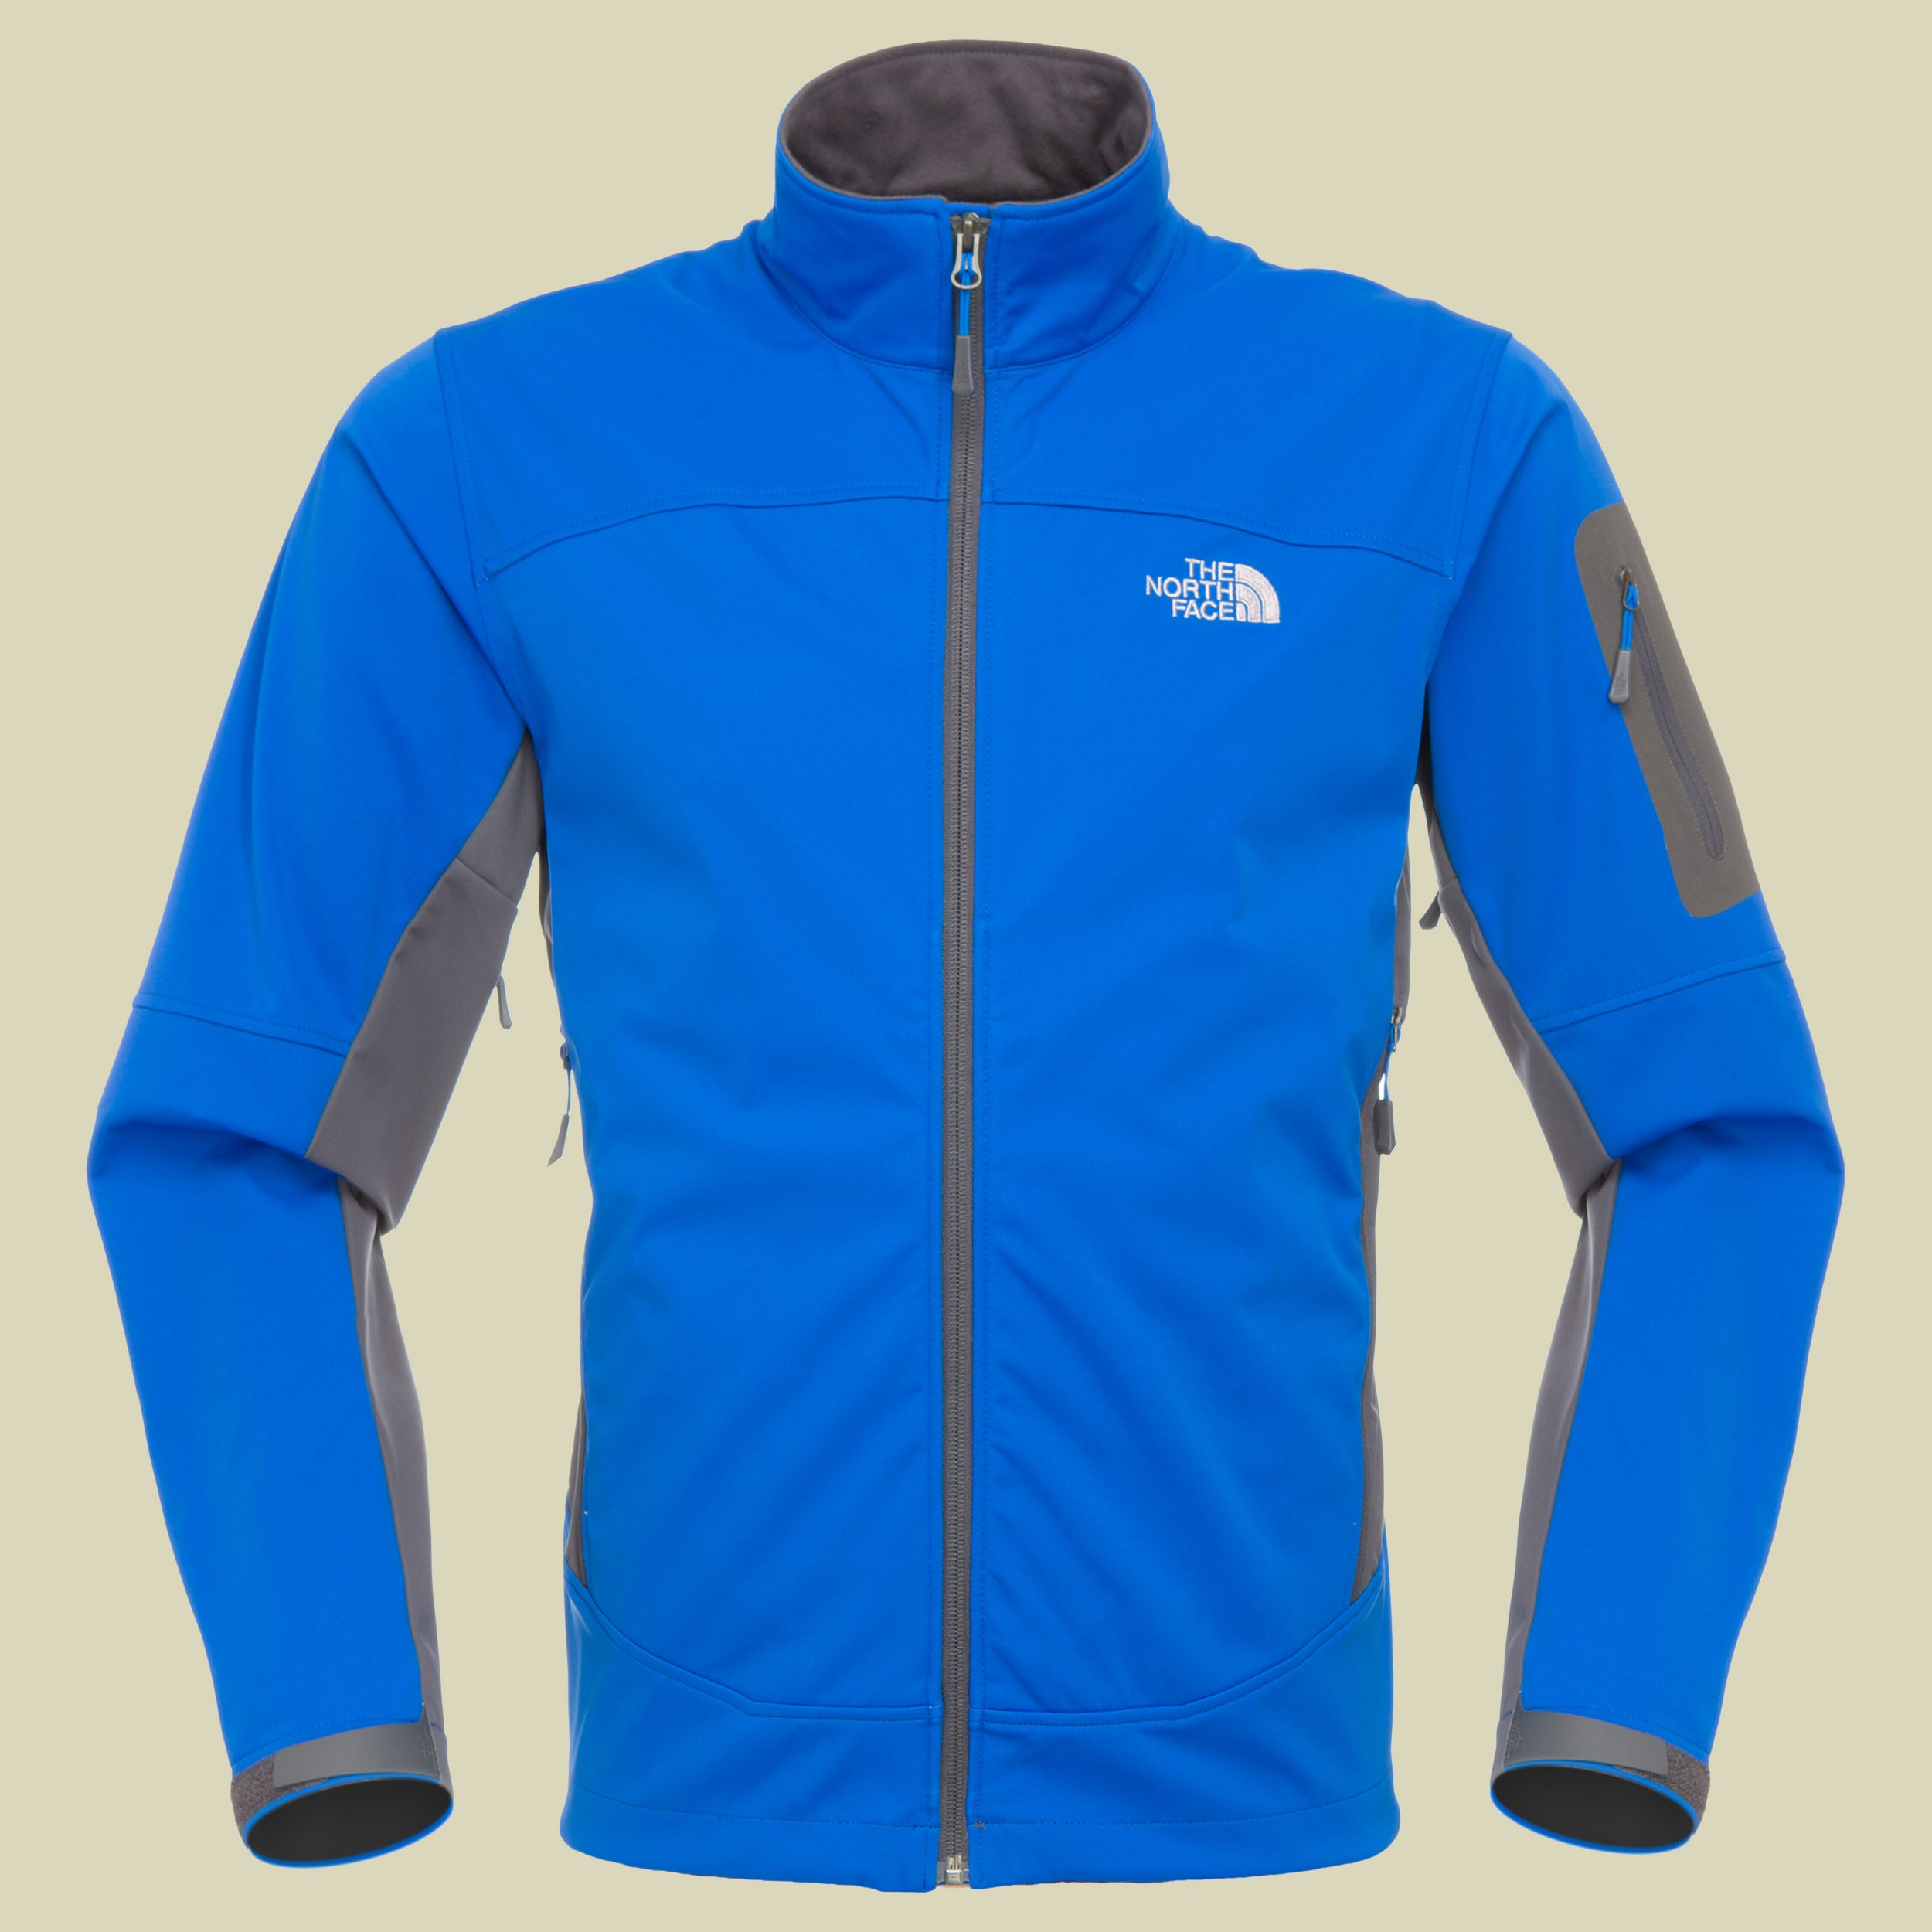 Cotopaxi Jacket Men